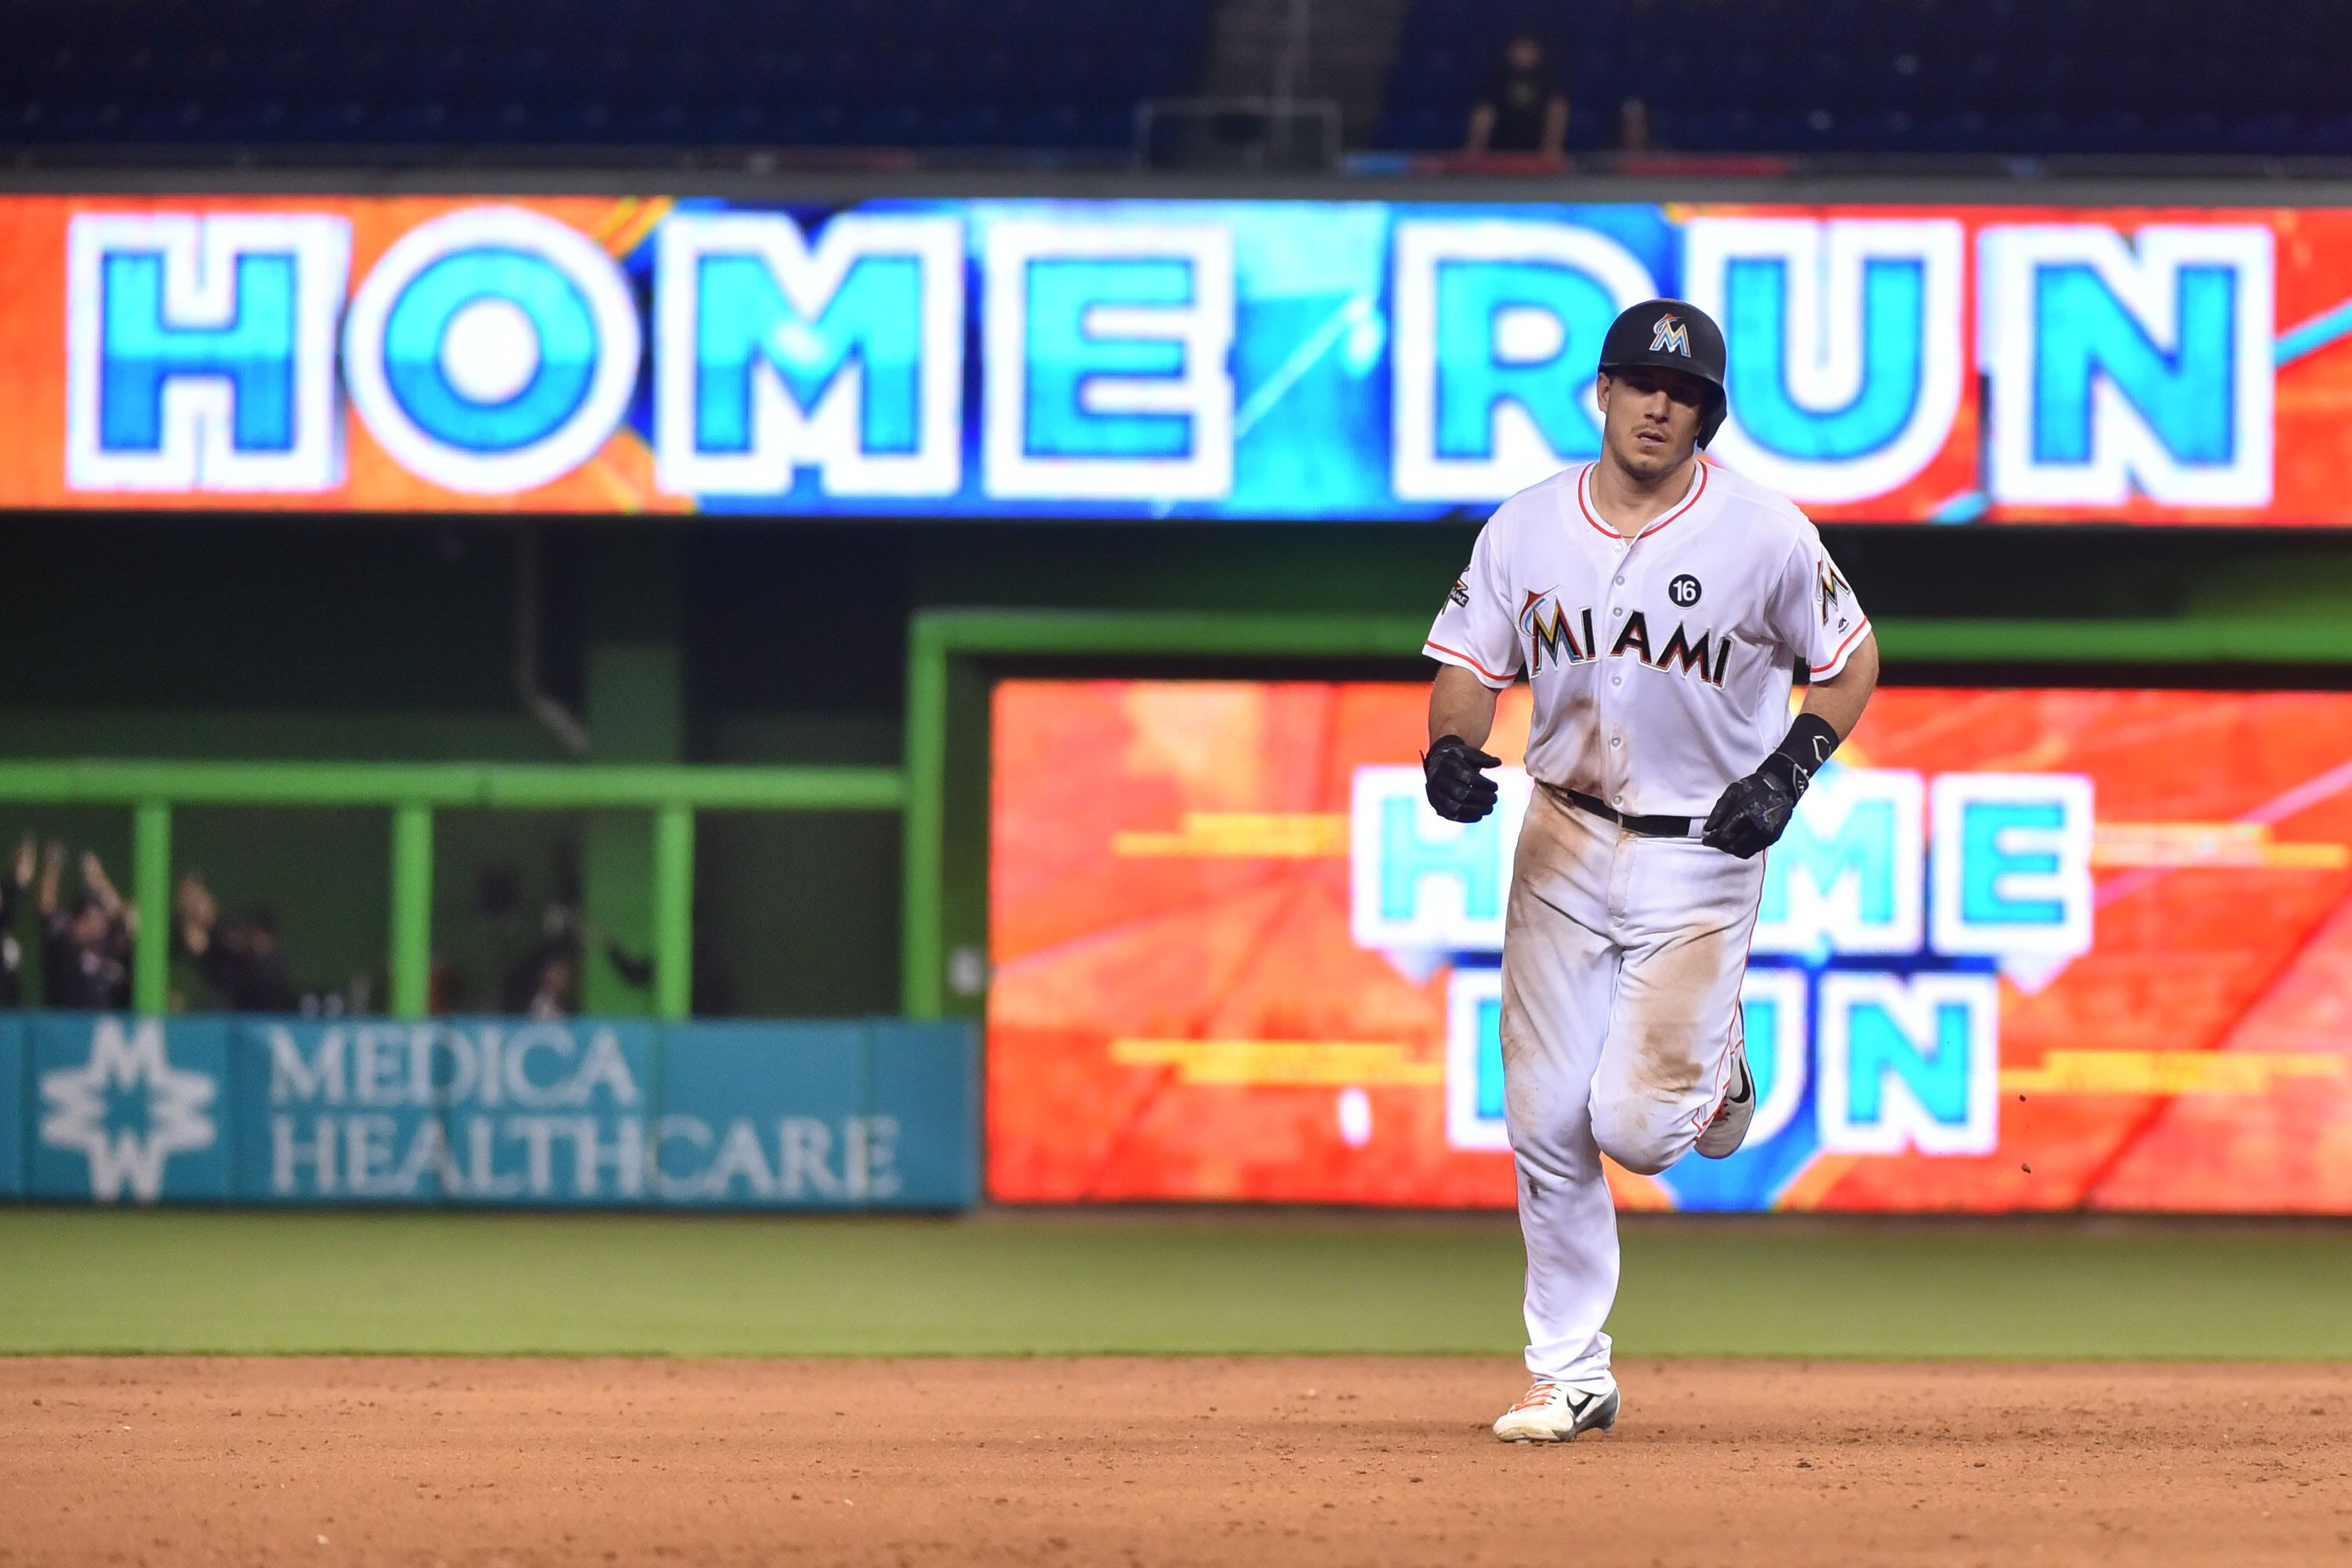 849821498-new-york-mets-v-miami-marlins.jpg